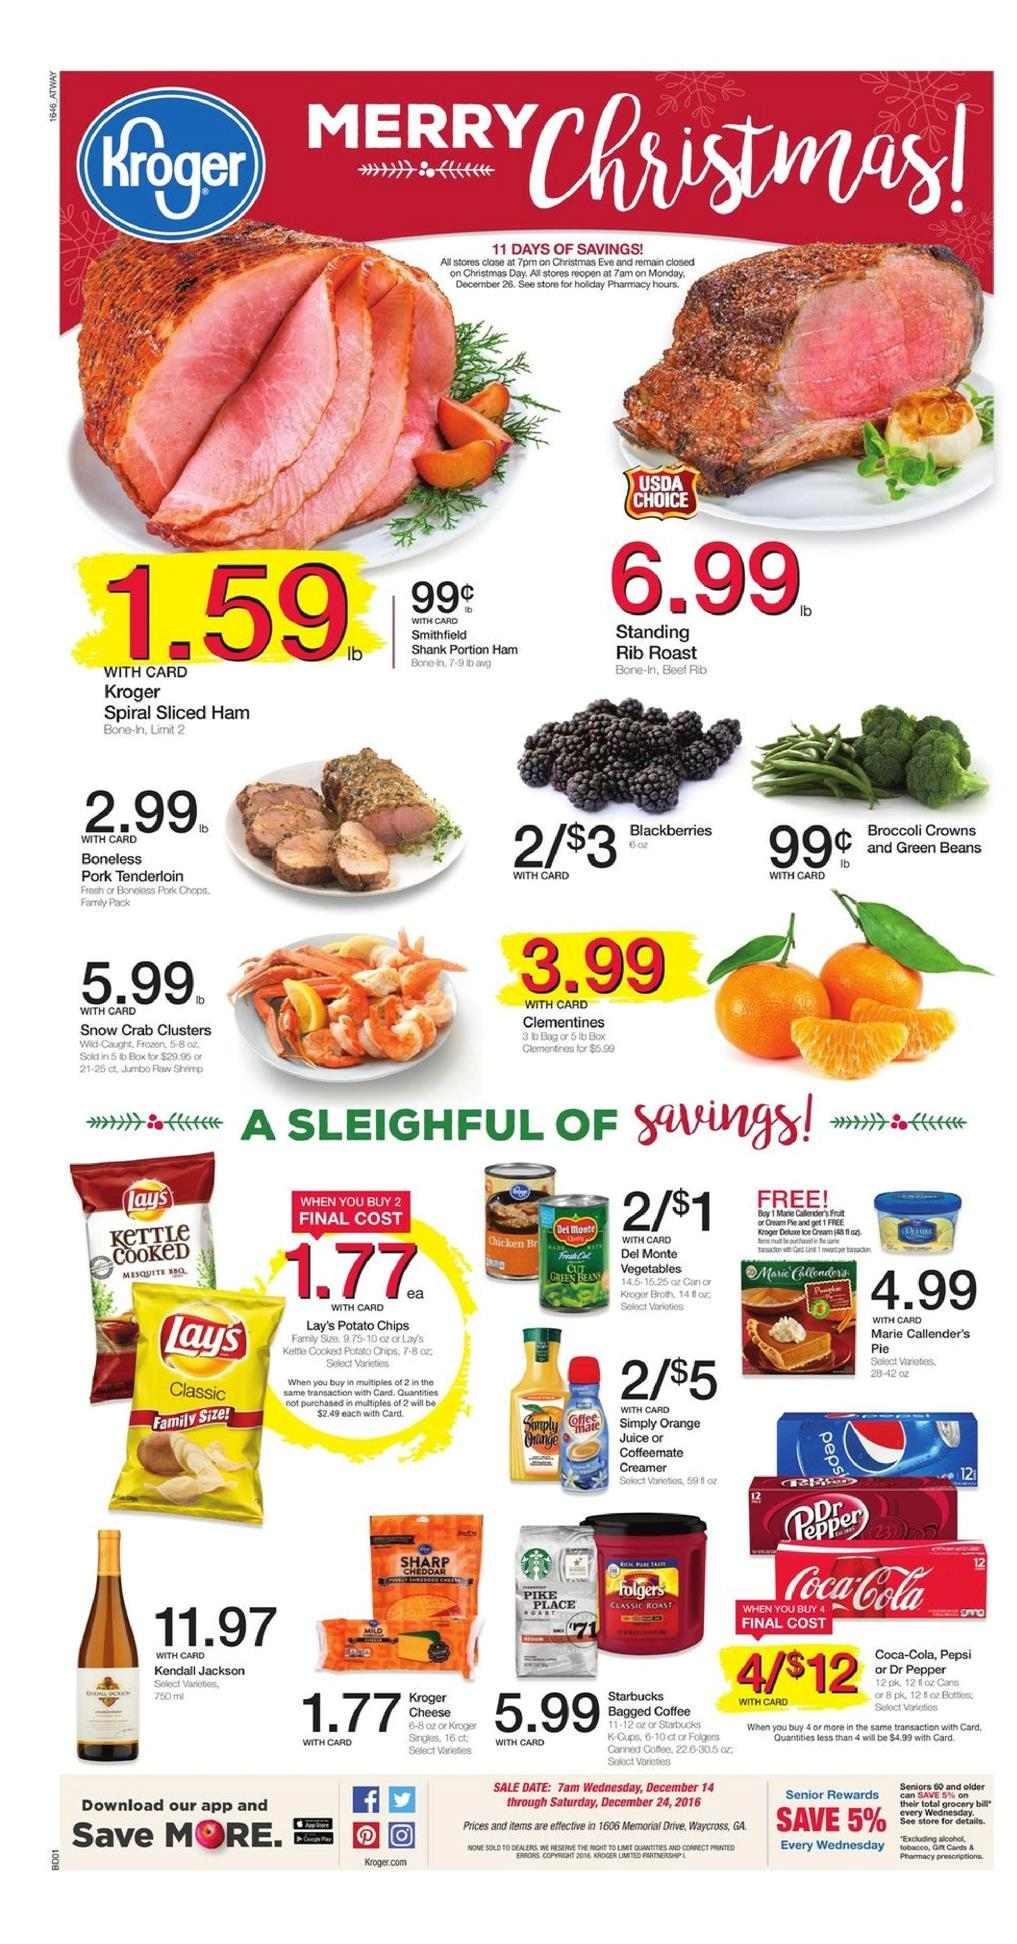 Kroger Weekly Ad December 14 - 24 2016